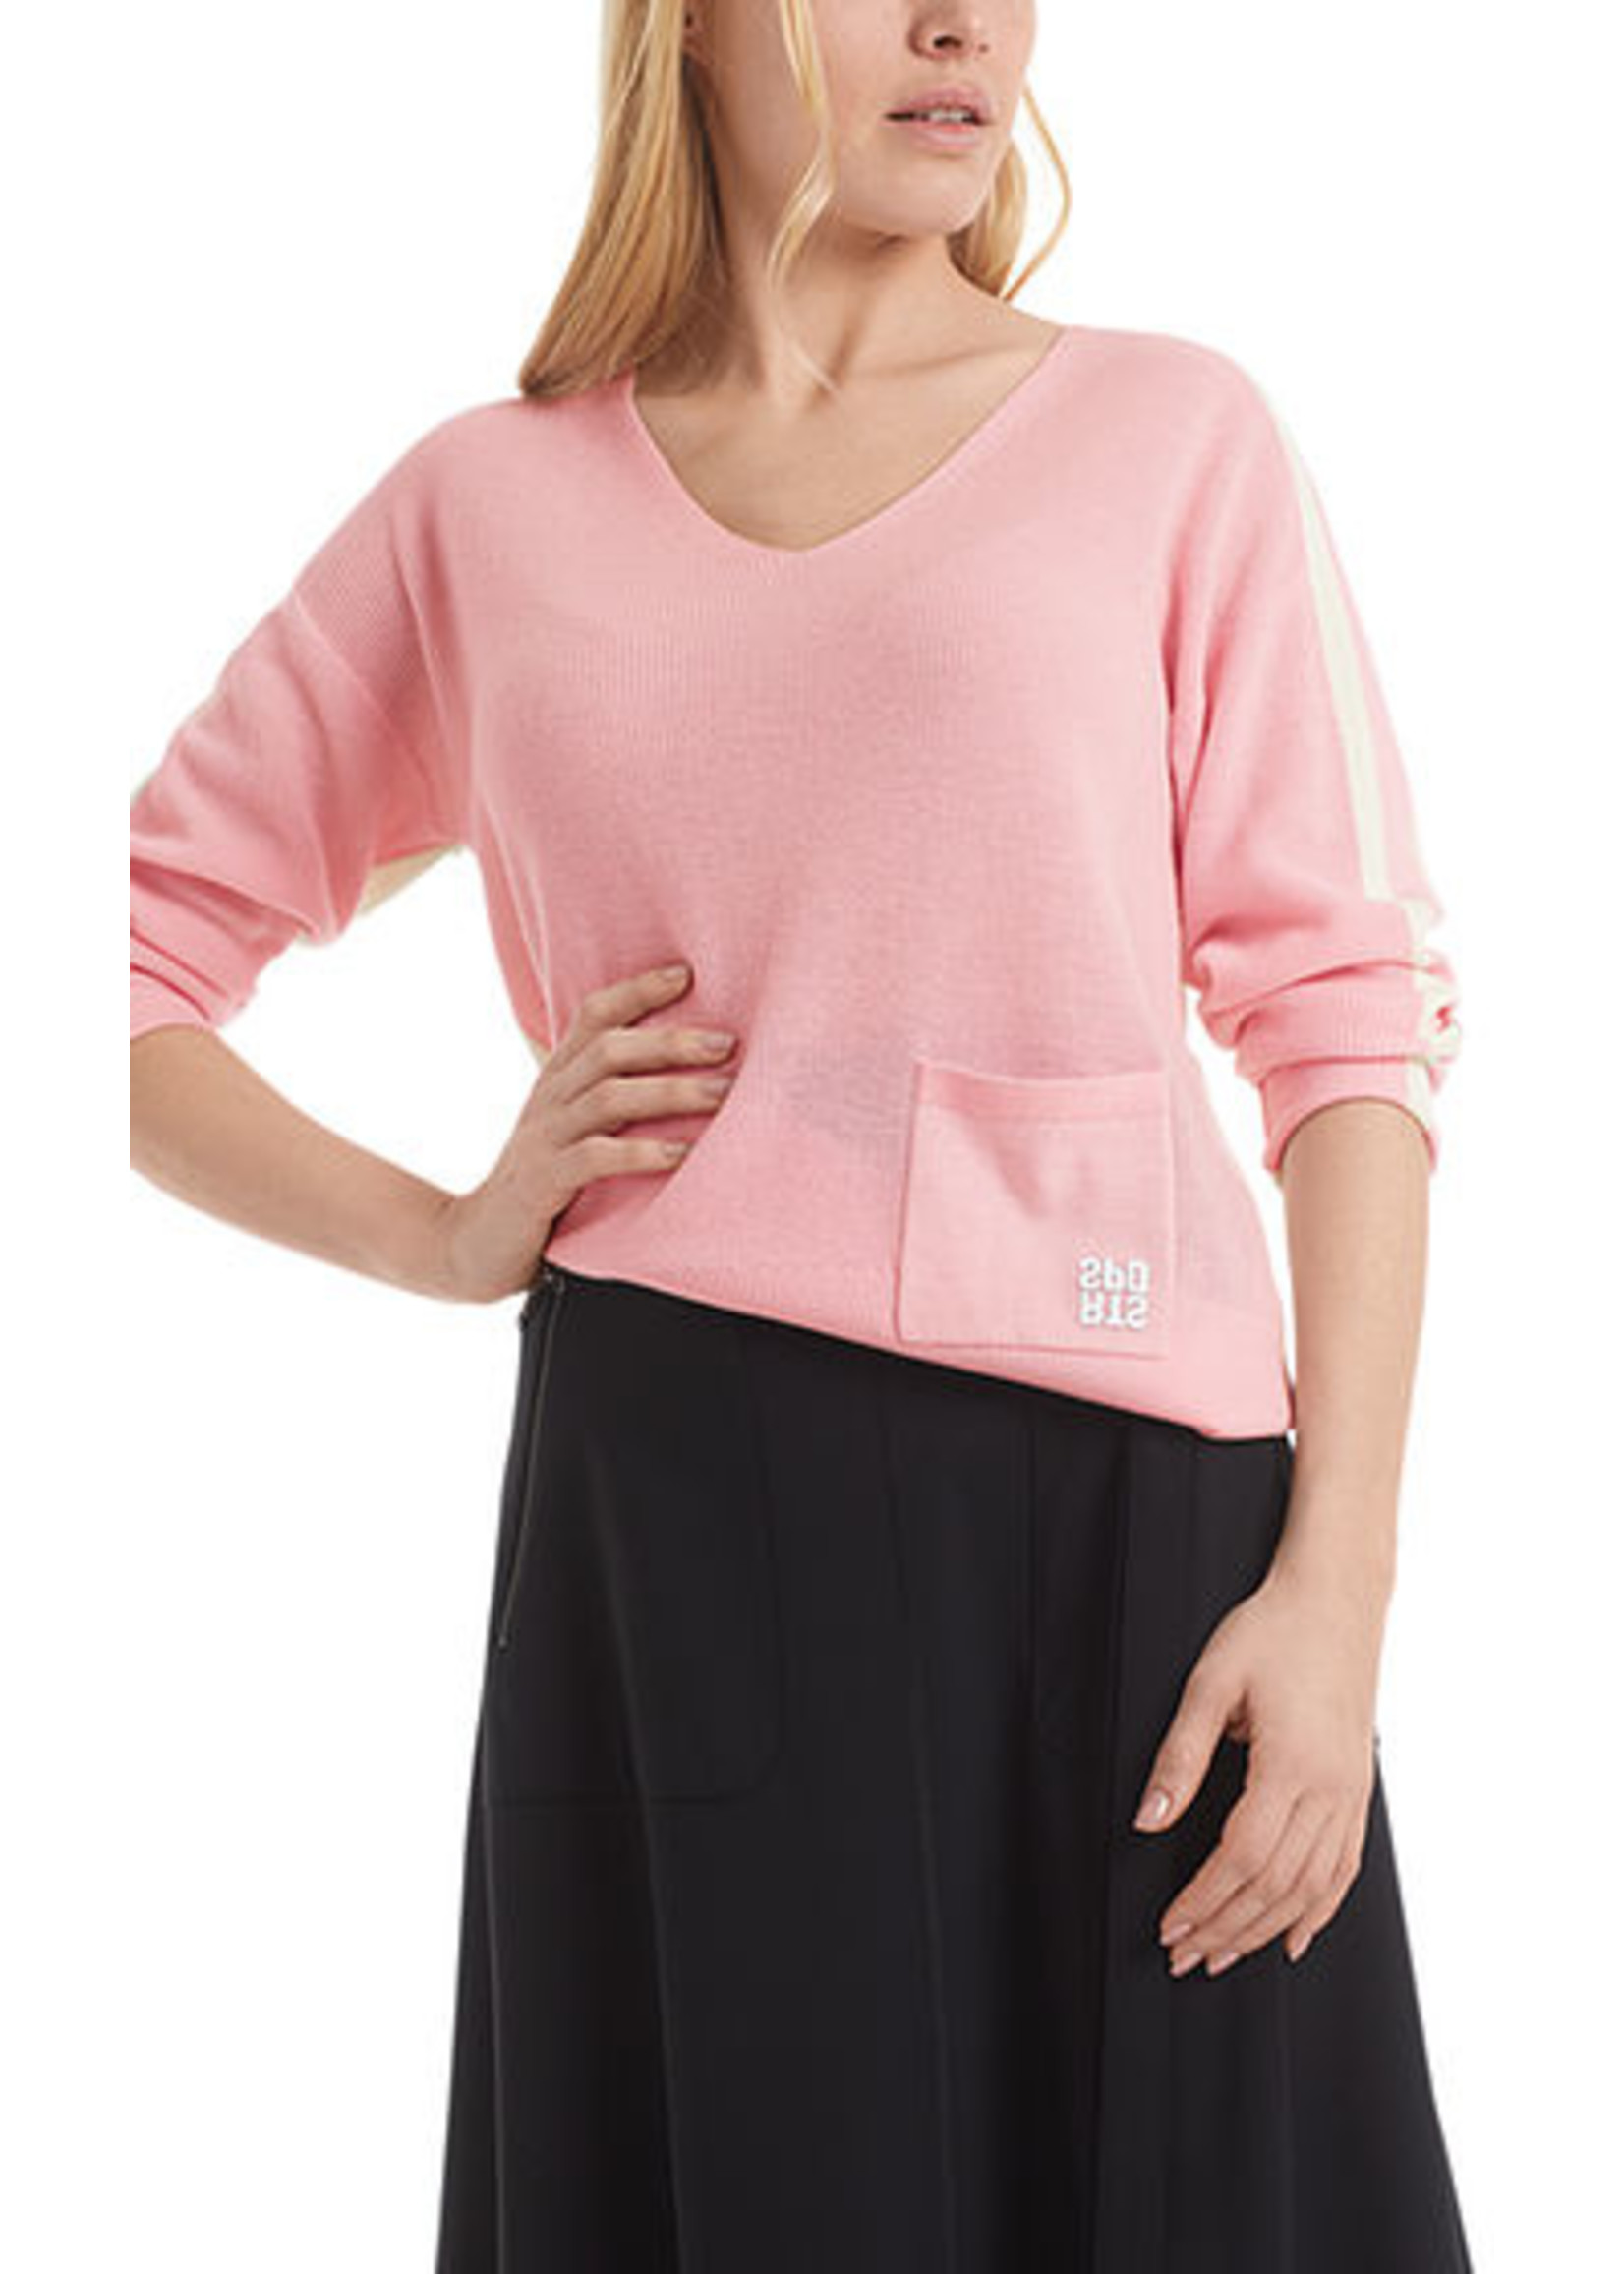 Marccain Sports Sweater RS 41.08 M70 coralblush